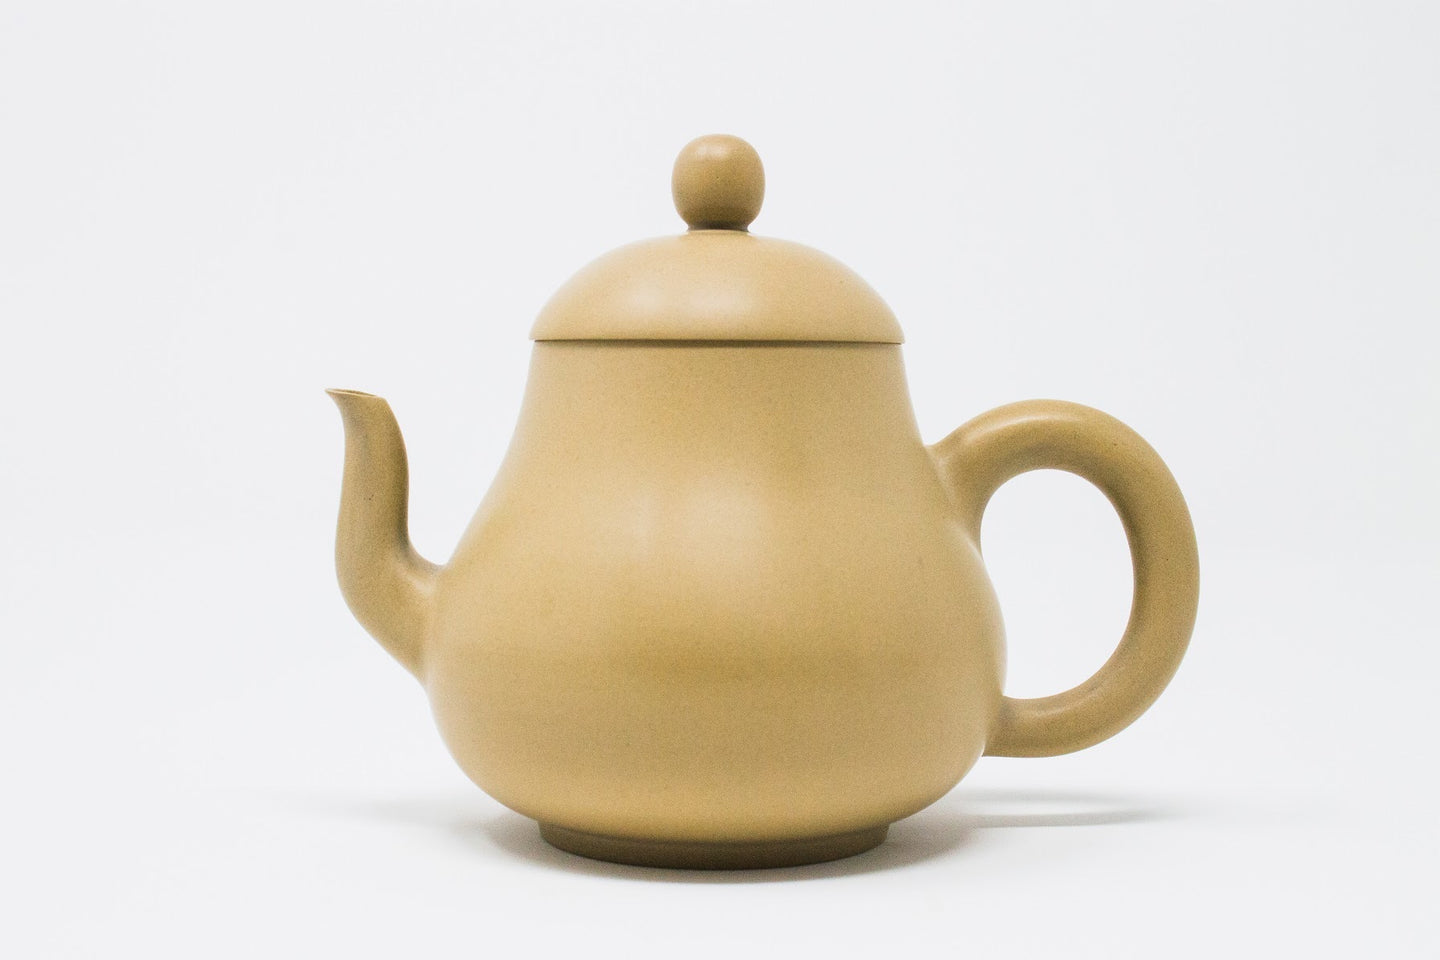 ANMO-design limited Yang ( light clay ) Jianshui teapot